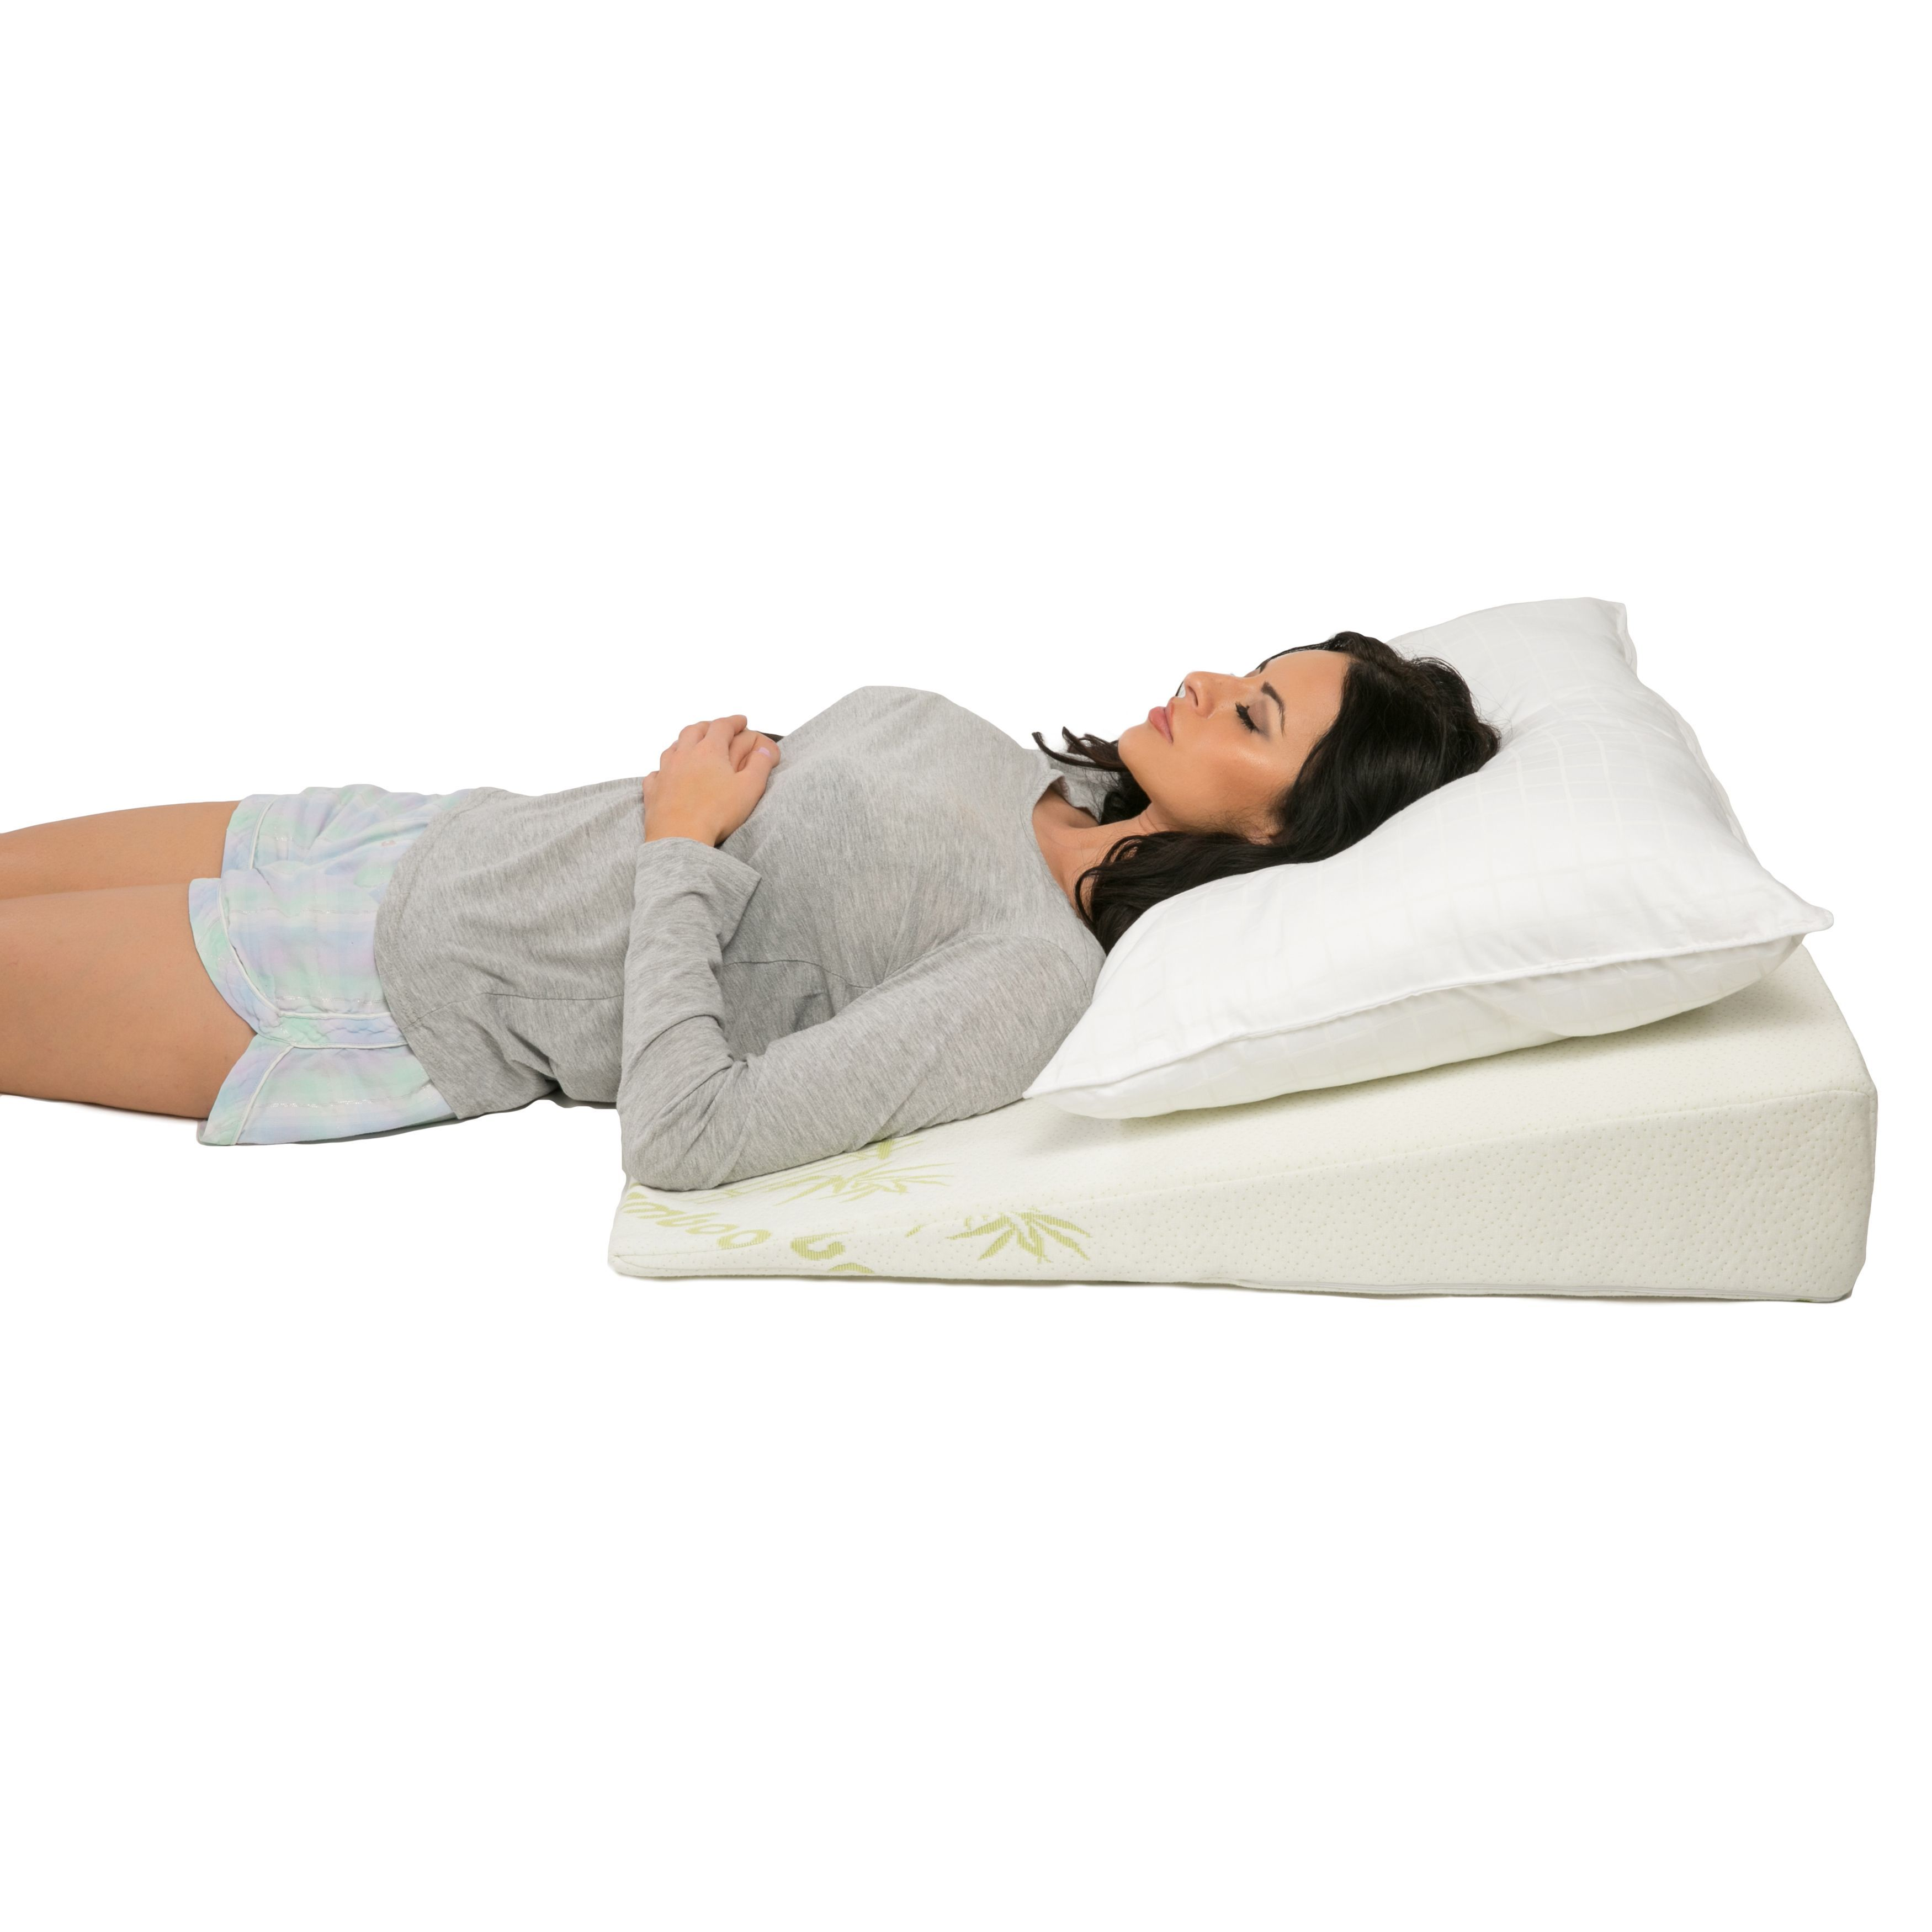 foam pillow folding leg support angel cushion wedge for back pin bed rest